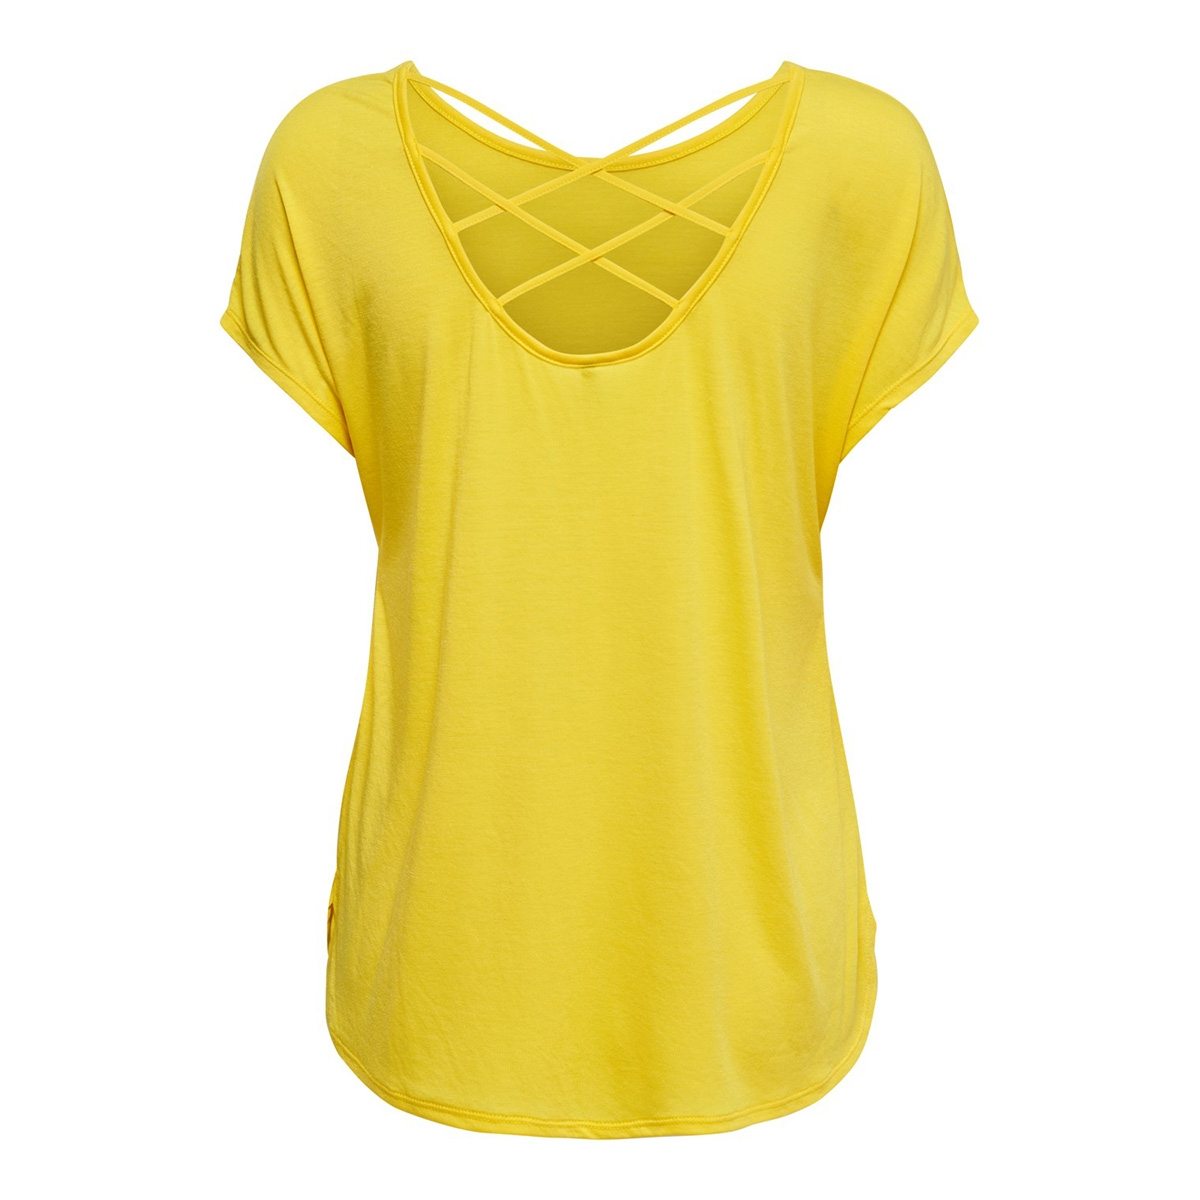 onlmimi s/s top jrs 15179405 only t-shirt habanero gold